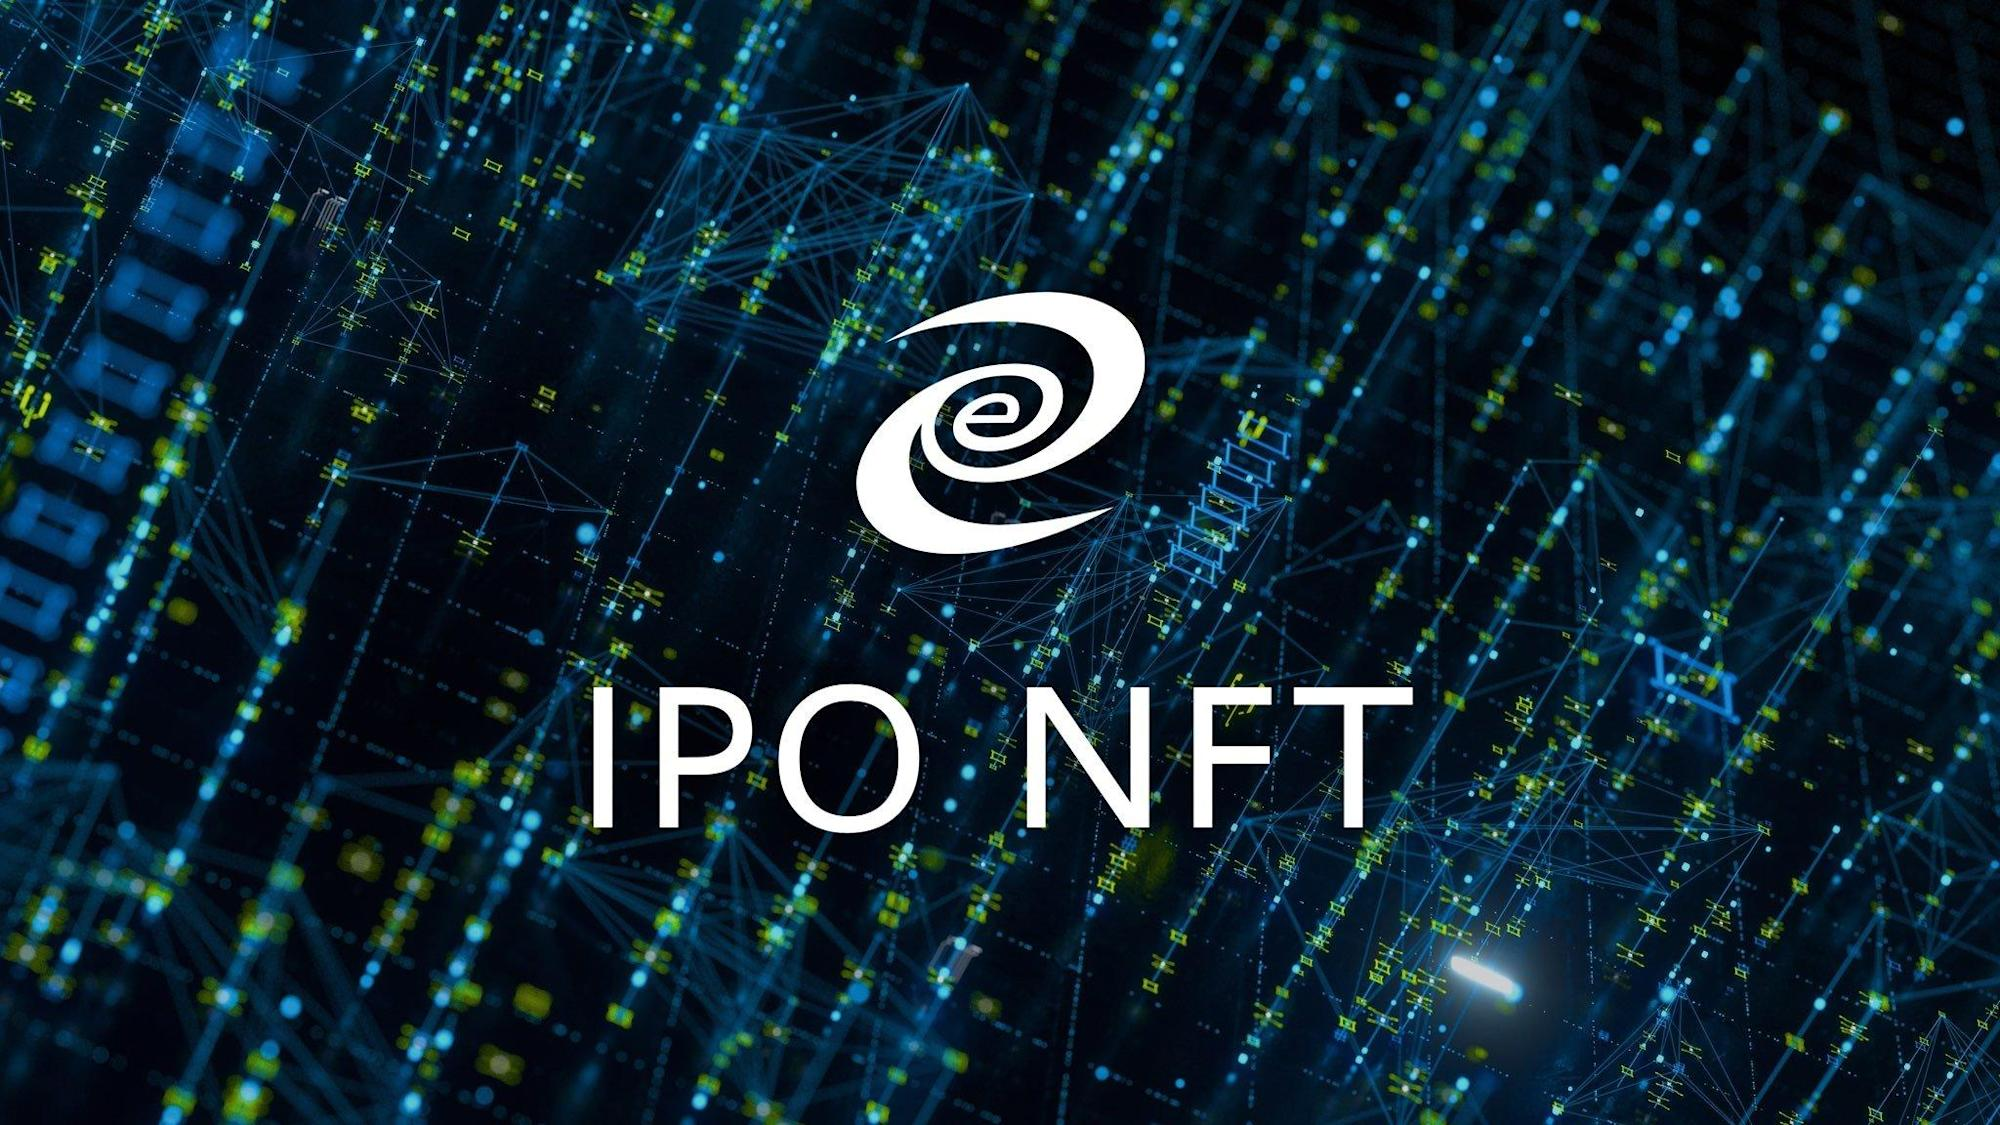 Deeper Network Inc. to Launch IPO of Limited-Edition NFTs for Equity Subscription